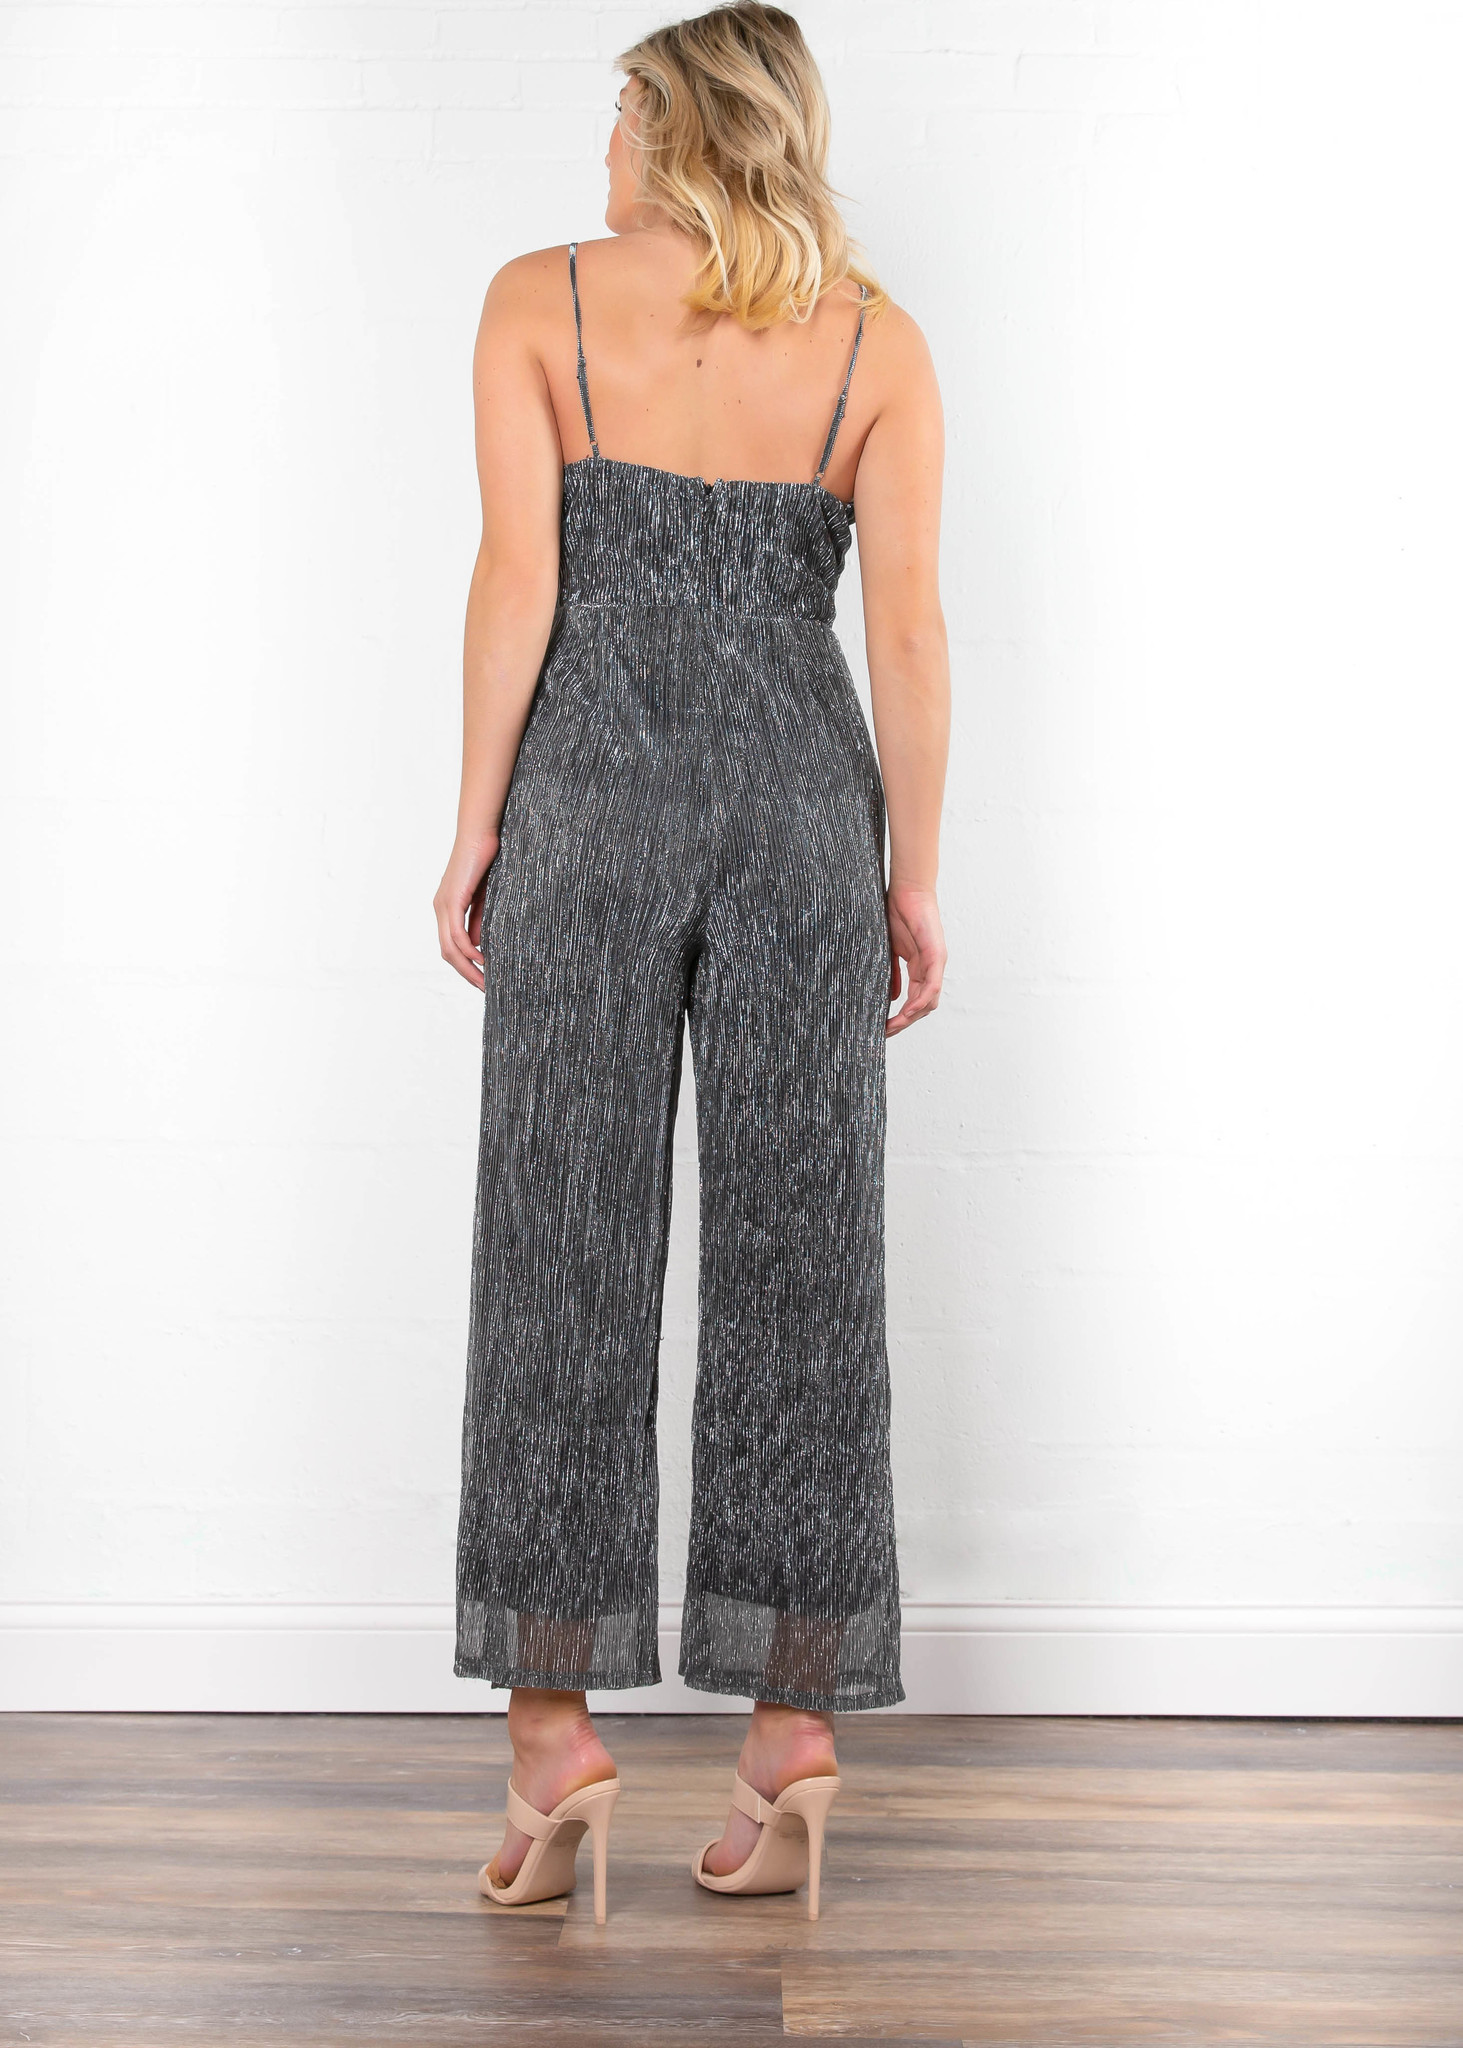 ALL NIGHT LONG JUMPSUIT